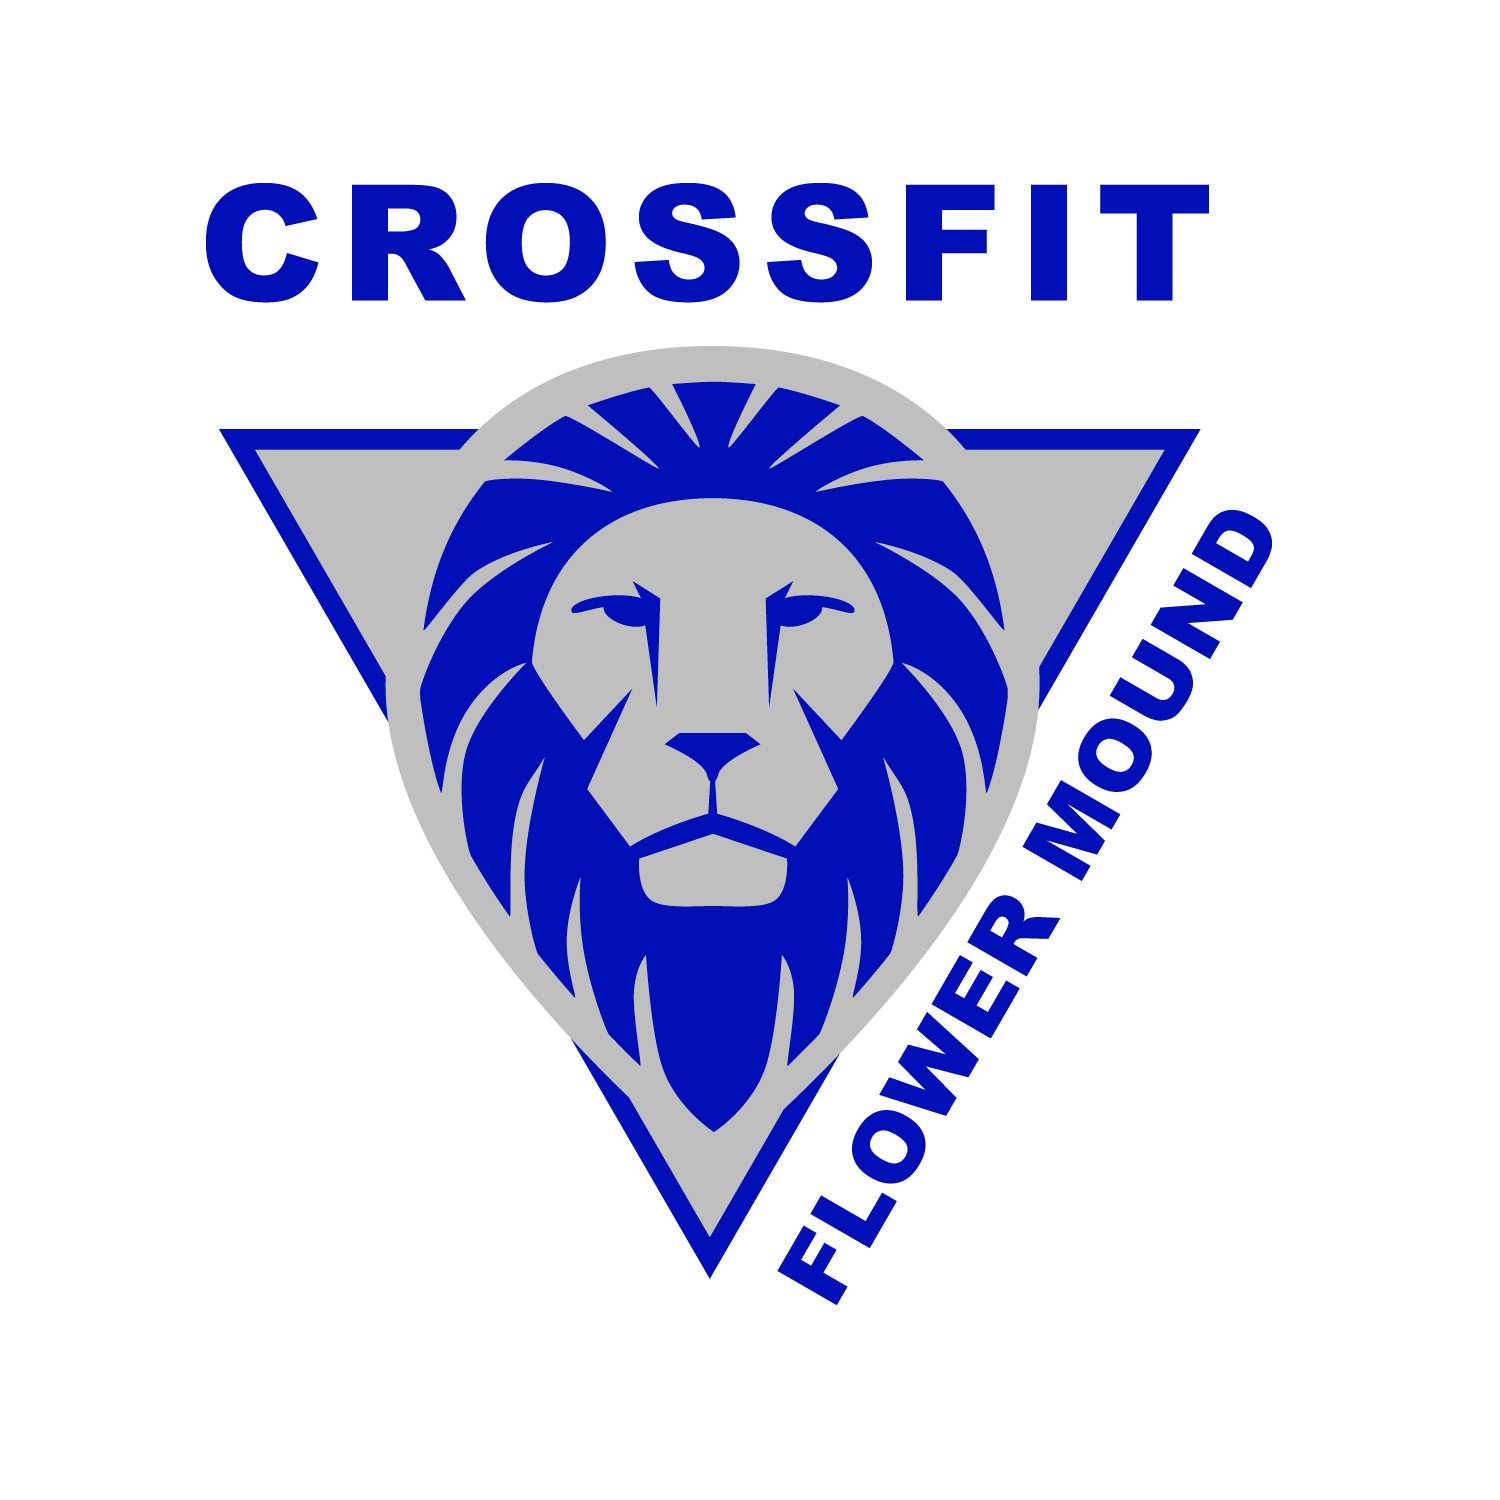 CrossfitFlowerMound-Logo-Final-CMYK-2.jpg